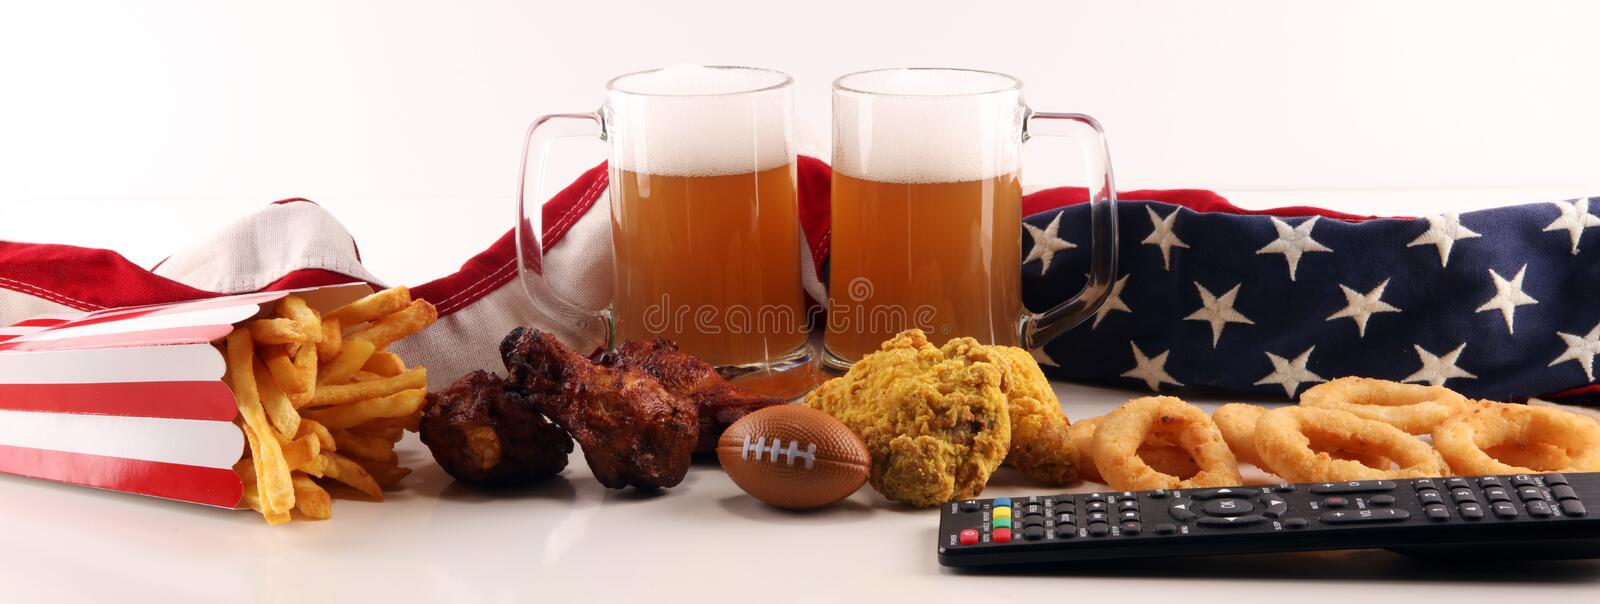 Chips, salty snacks, football and Beer on a table. Great for Bowl Game projects royalty free stock photos